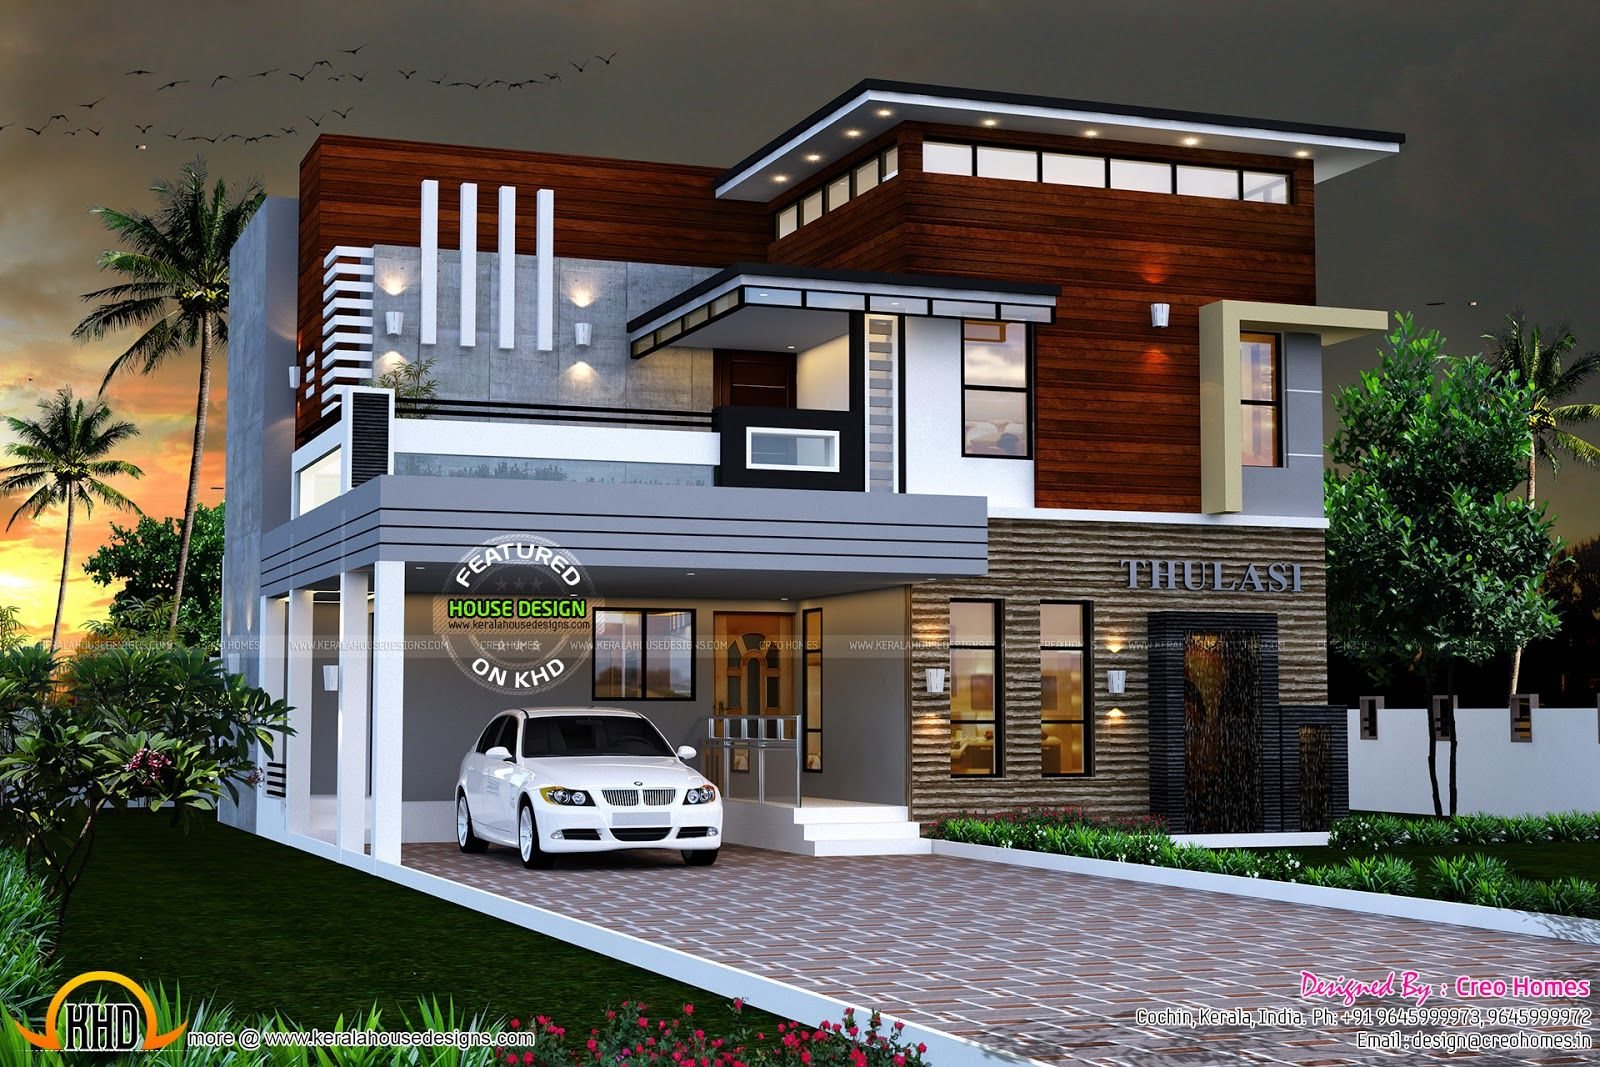 Eterior design modern small house architecture building for Best house model